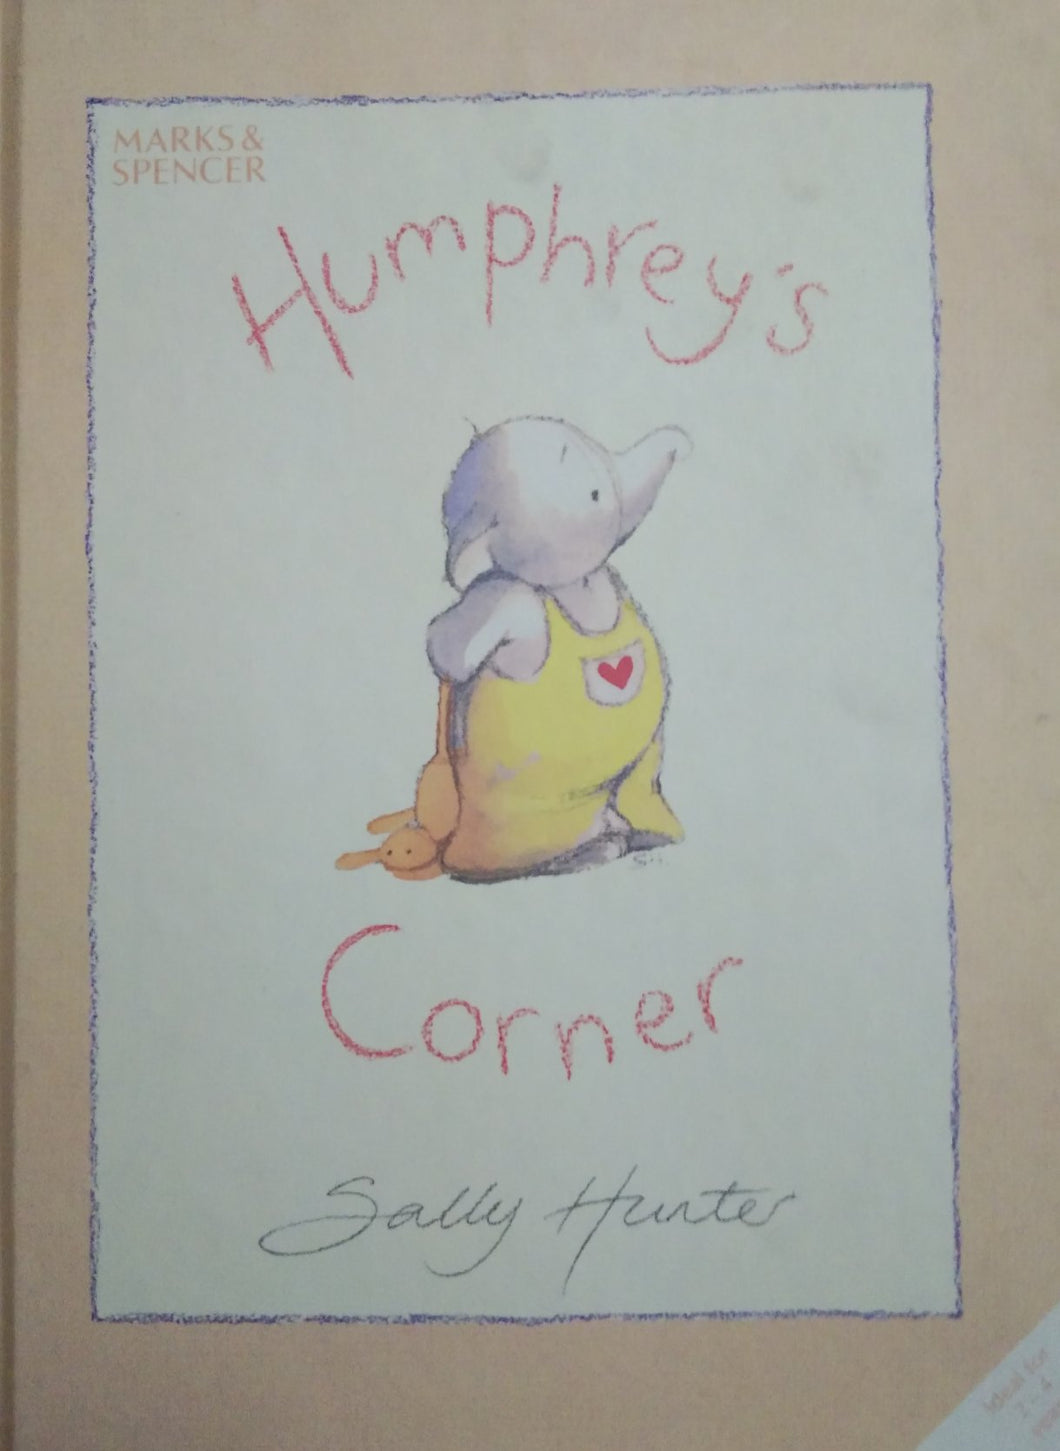 Humphrey's Corner by sally hunter